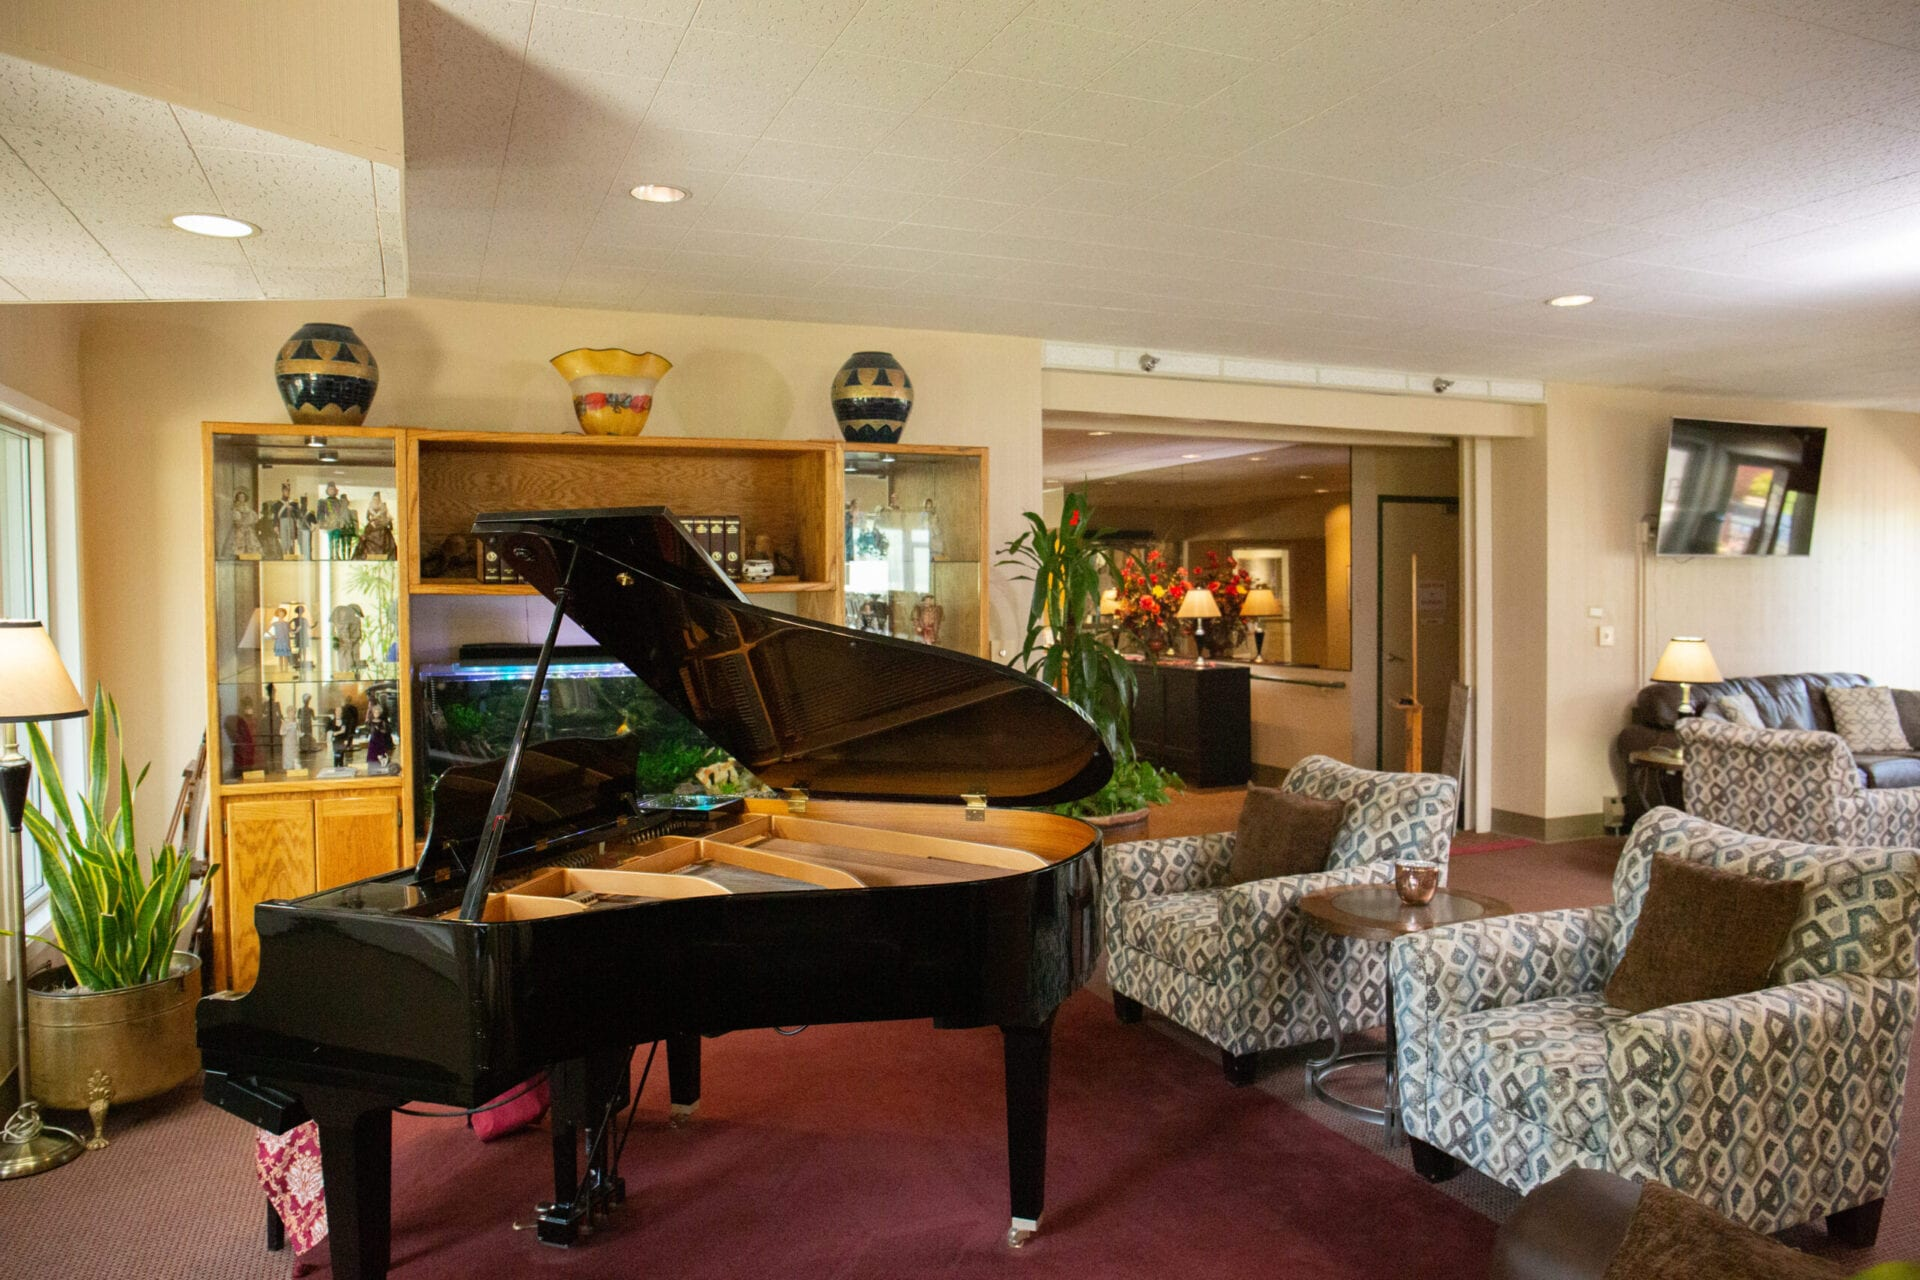 One of the main sitting areas of the facility with a grand piano